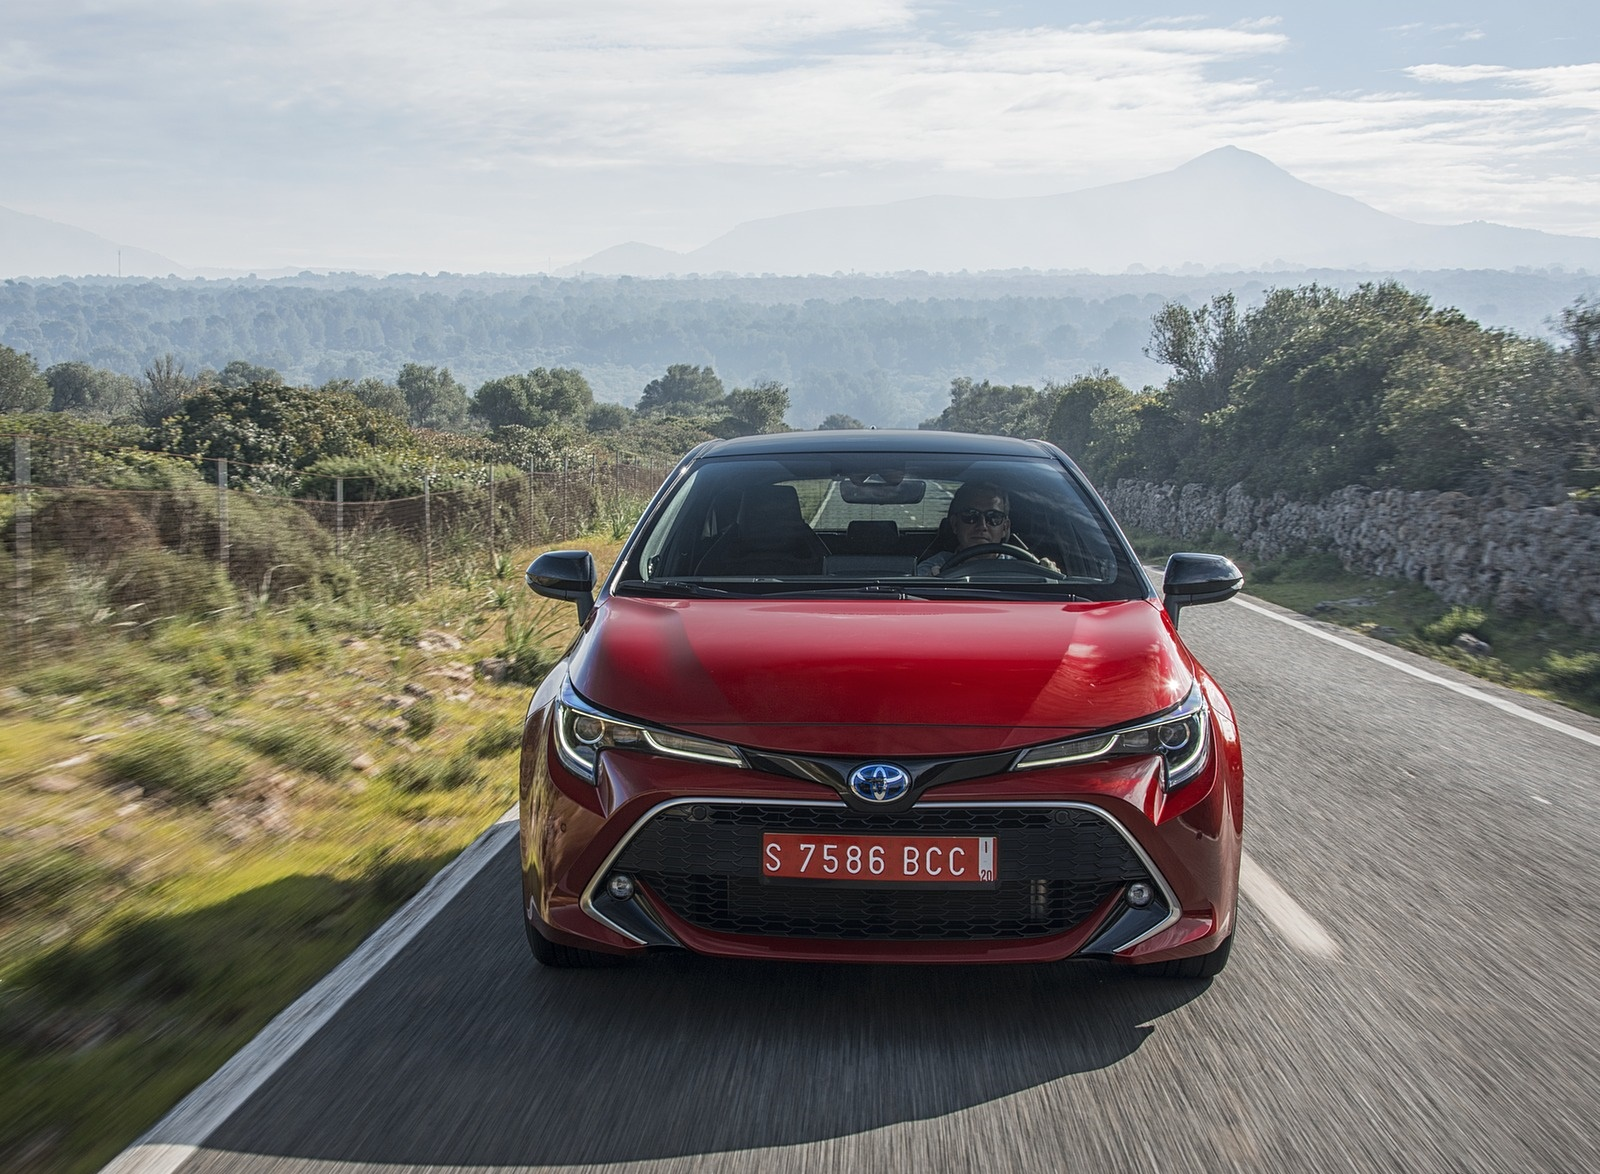 2019 Toyota Corolla Hatchback Hybrid 2.0L Red bitone (EU-Spec) Front Wallpapers (14)